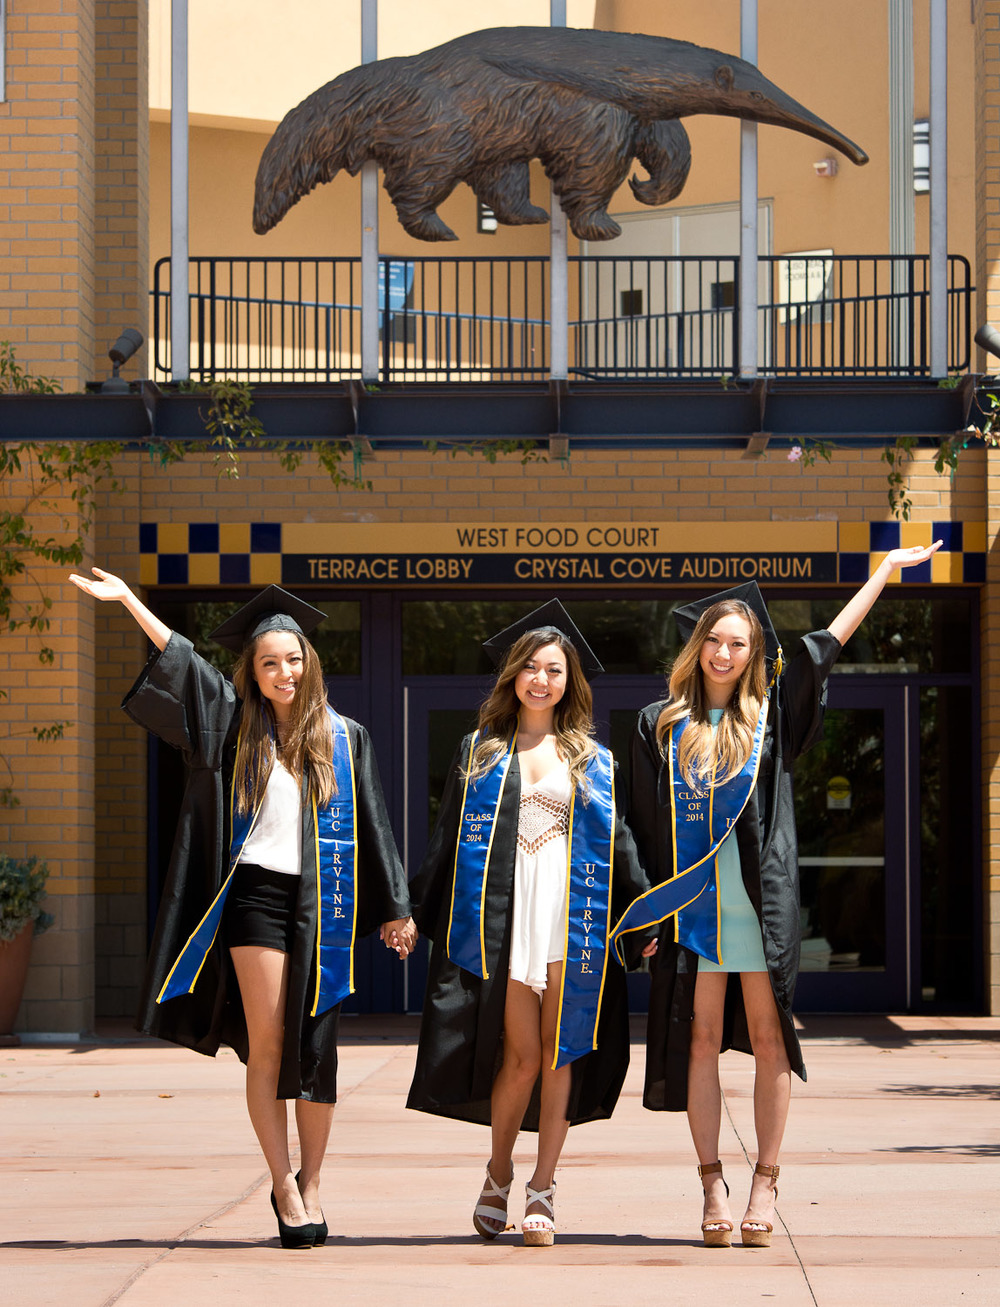 Bryan-Miraflor-Photography-Group-Shawna-Nancy-Lizzy-Grad-Photoshoot-UCI-20140607-0042.jpg